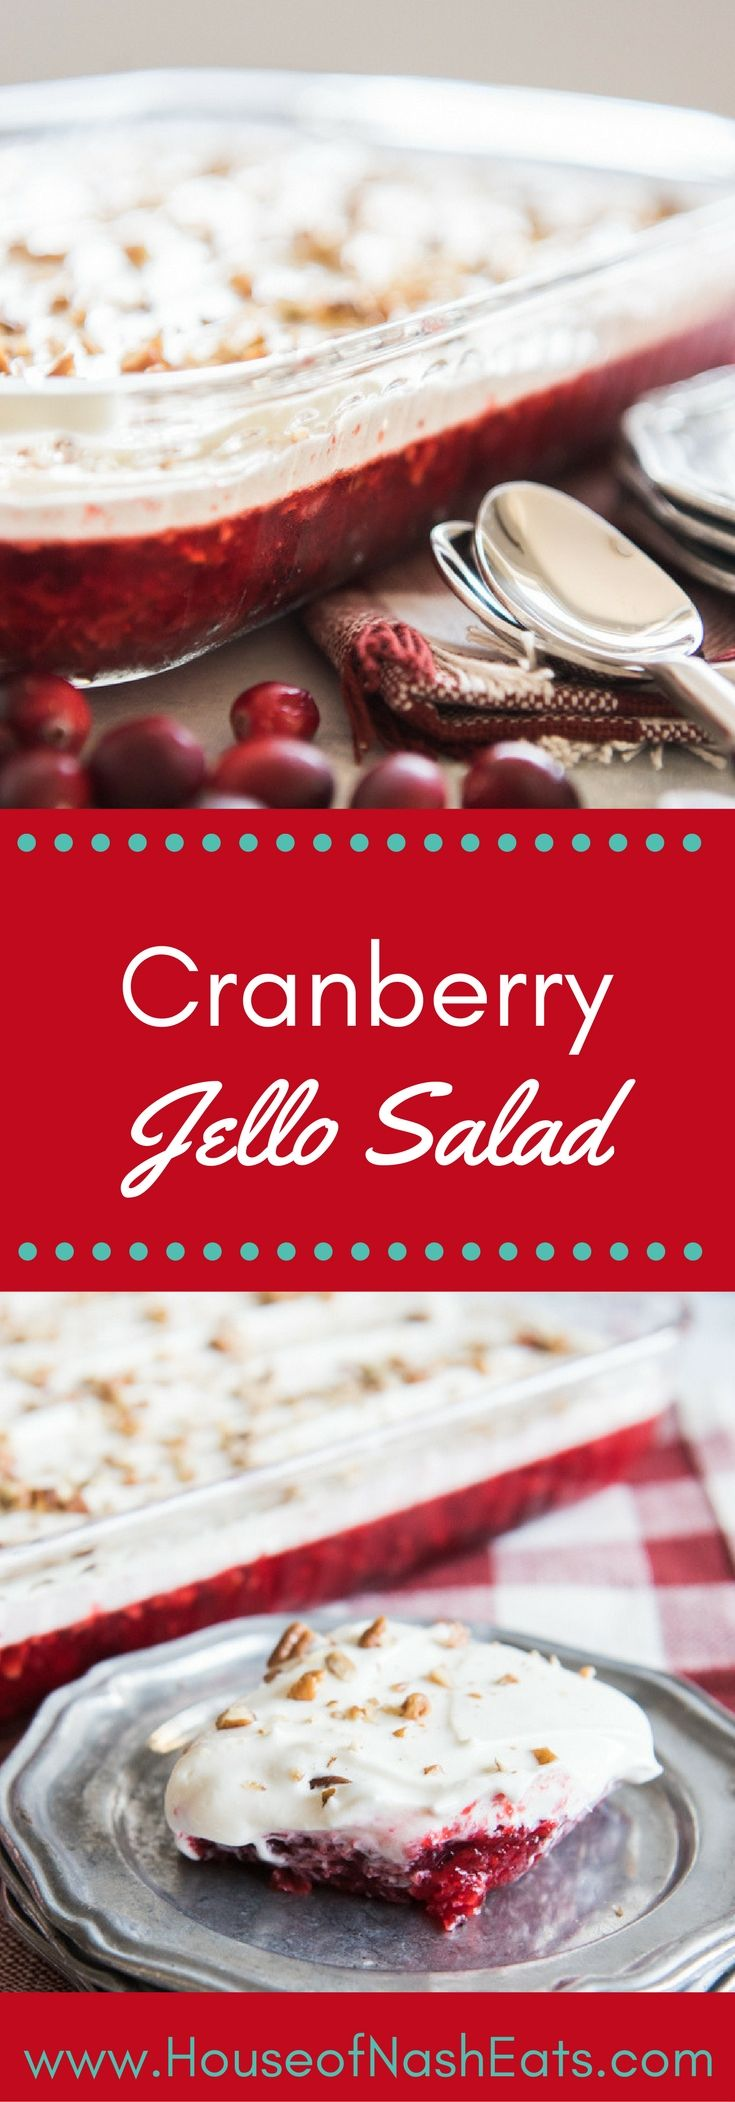 Cranberry Jell-O Salad  My great grandmother Brachenwagon used to make this when I was a little girl. She made it in a binder mold and filled the middle with the topping. I have been looking for this recipe for 30 years!